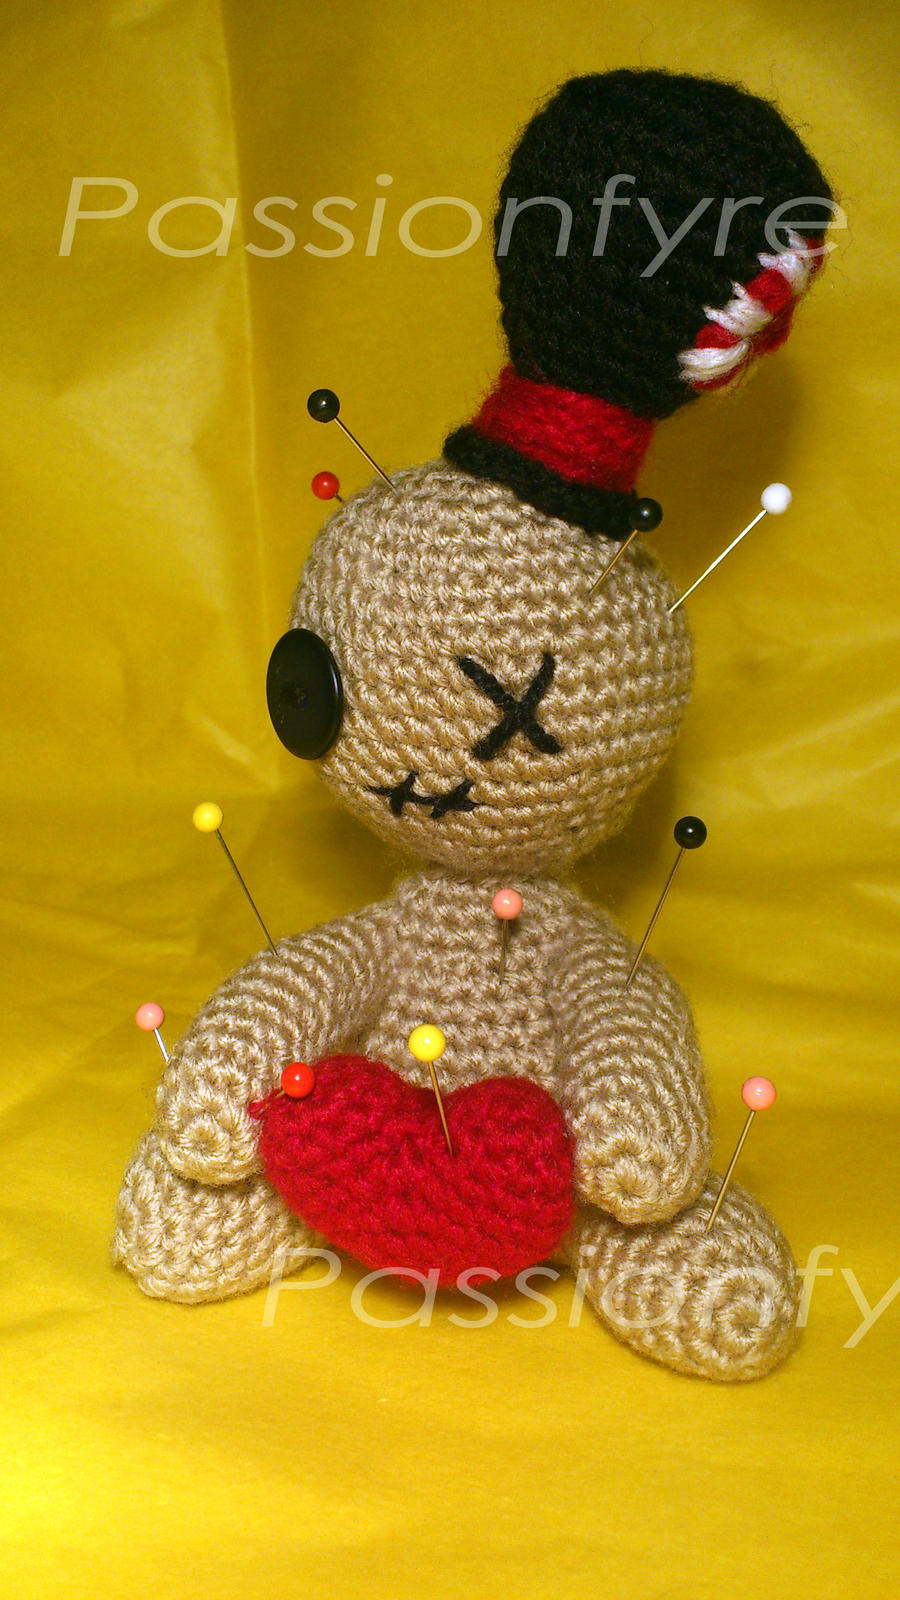 Amigurumi Voodoo Doll Pin Cushion by passionfyre on DeviantArt